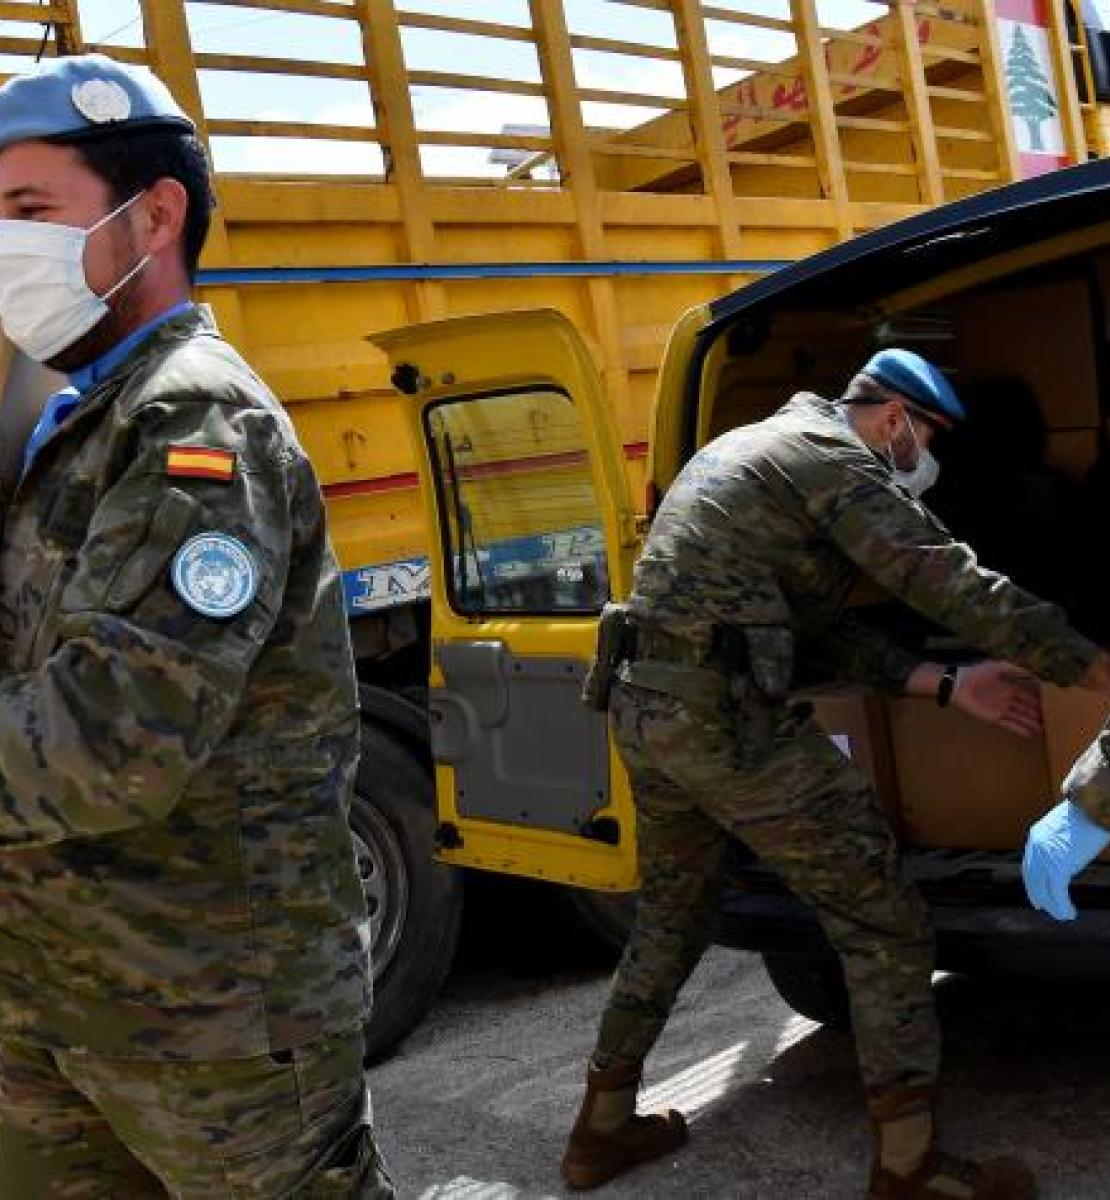 United Nations Interim Force in Lebanon unload a truck full of lifesaving supplies.